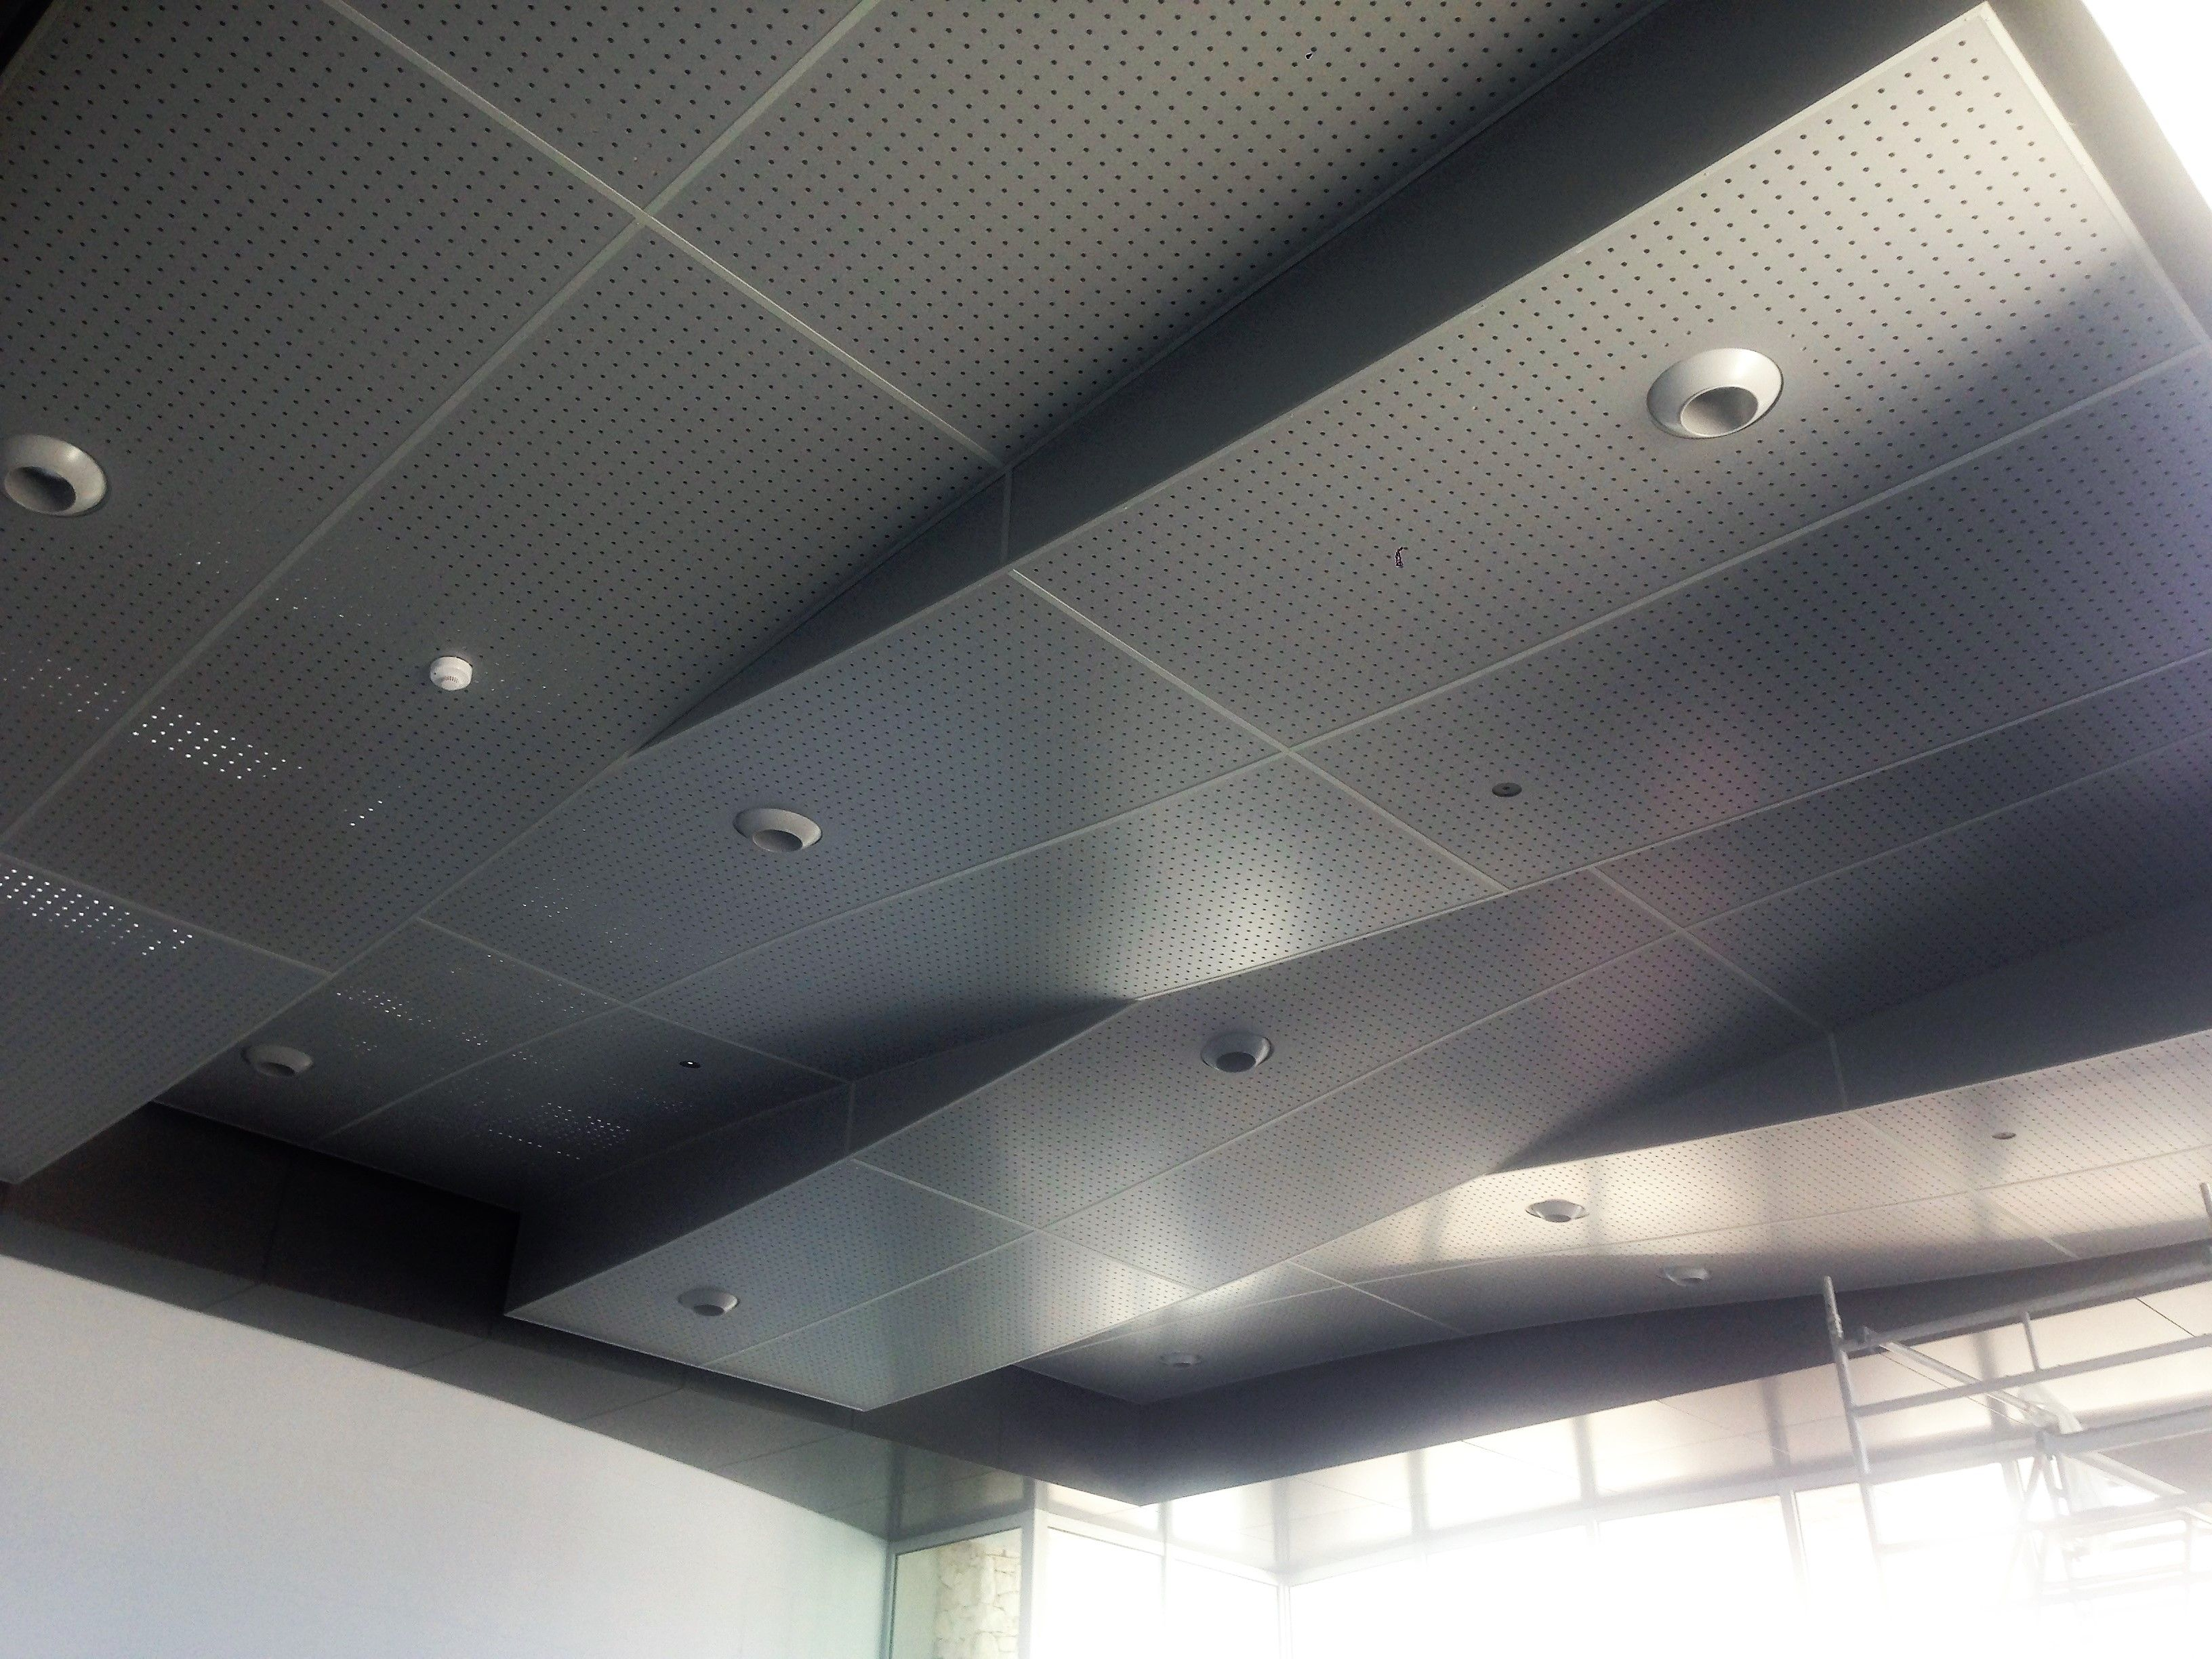 africa aluminium structural systems installed curved ceiling